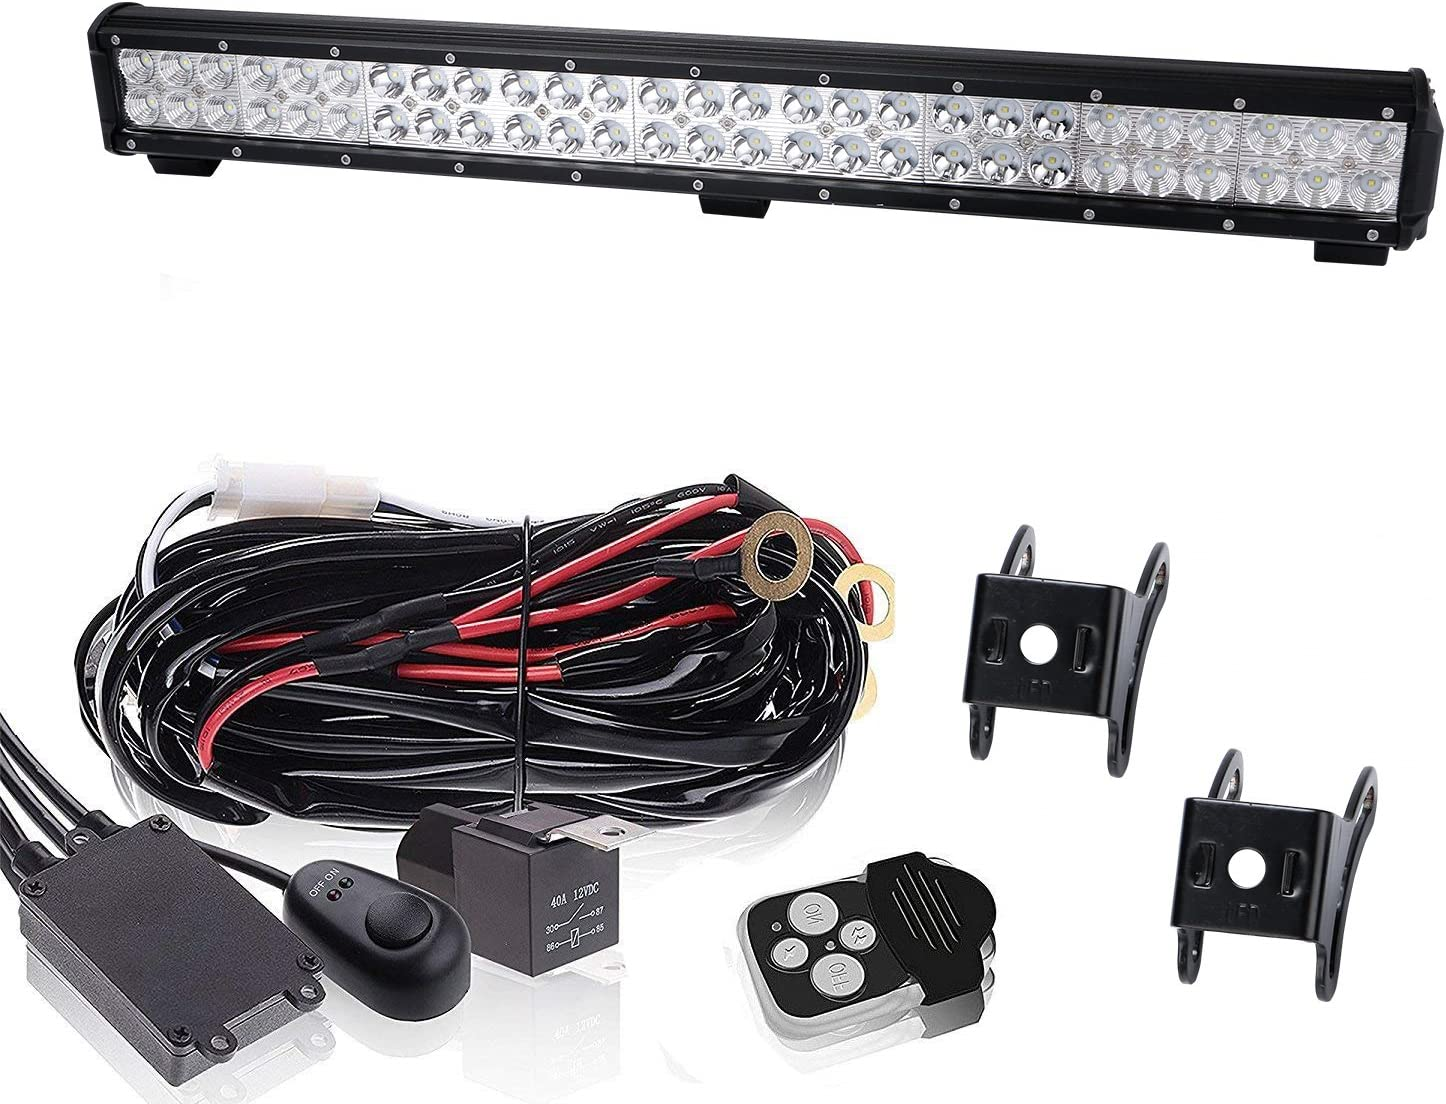 amazon.com: 25 inch 162w combo beam led light bar on front bumber w/remote  switch wiring harness for chevy silverado boat tahoe ford ranger land  cruiser suv tractor tacoma polaris truck tractor: automotive  amazon.com